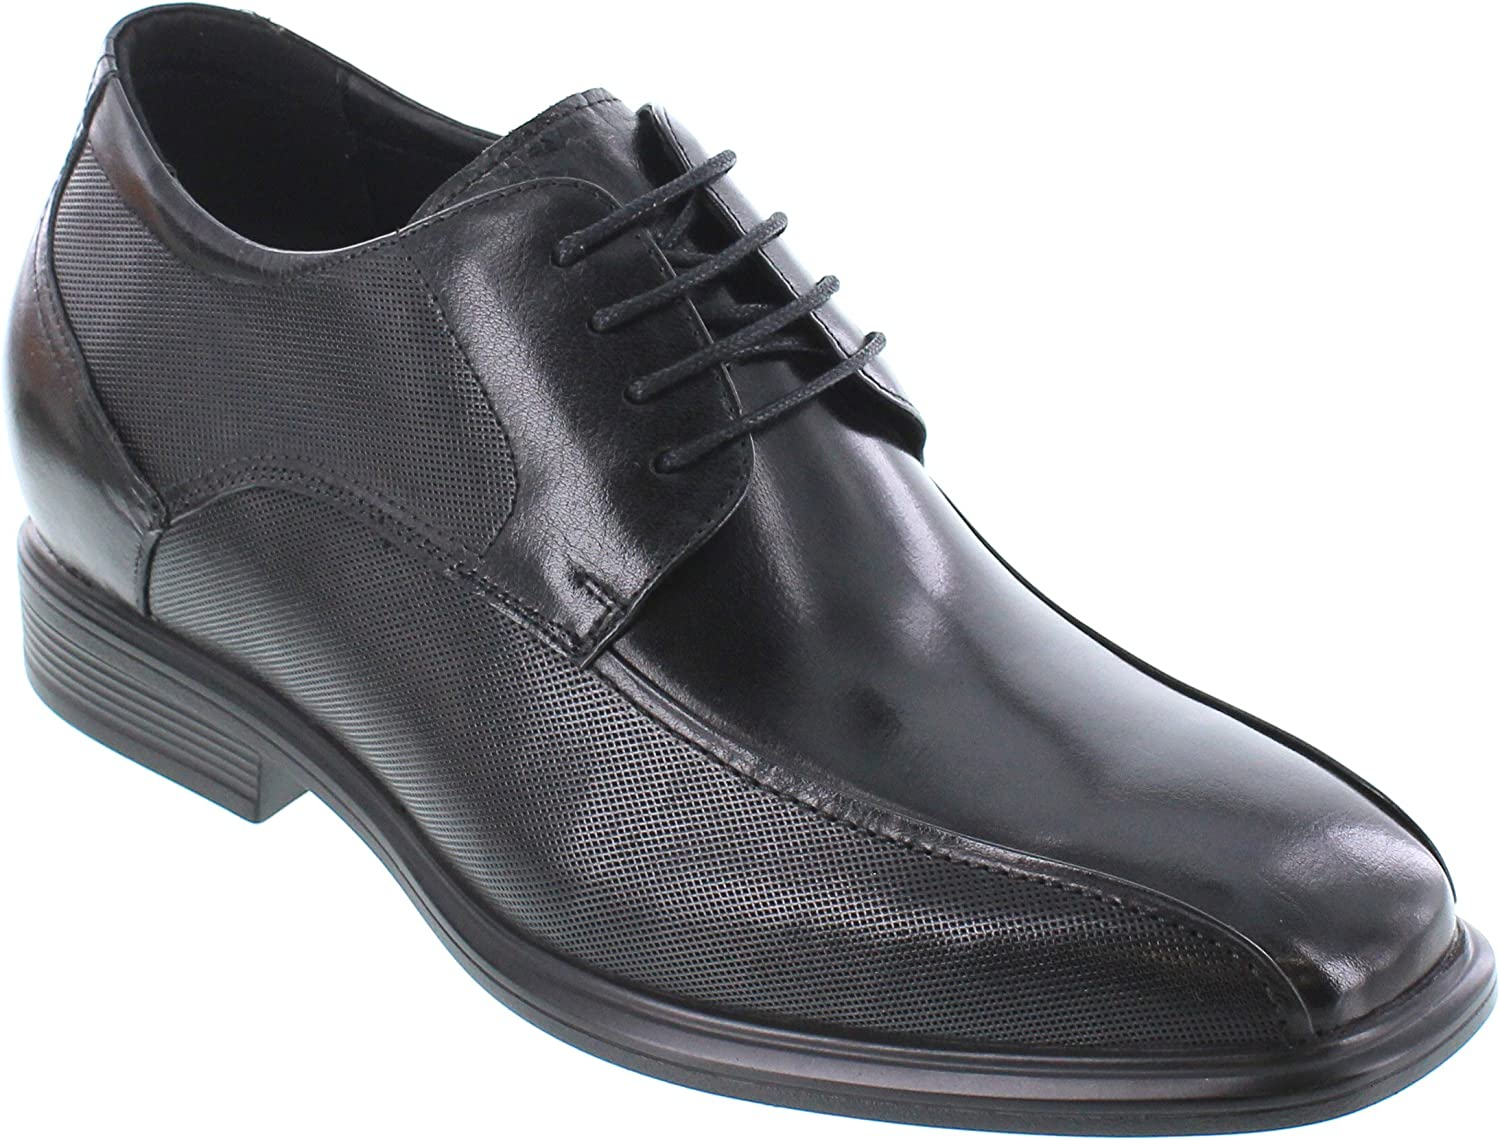 CALTO Men's Invisible Height Increasing Elevator shoes - Black Premium Leather Lace-up Lightweight Formal Derby Oxfords - 3 Inches Taller - Y3102